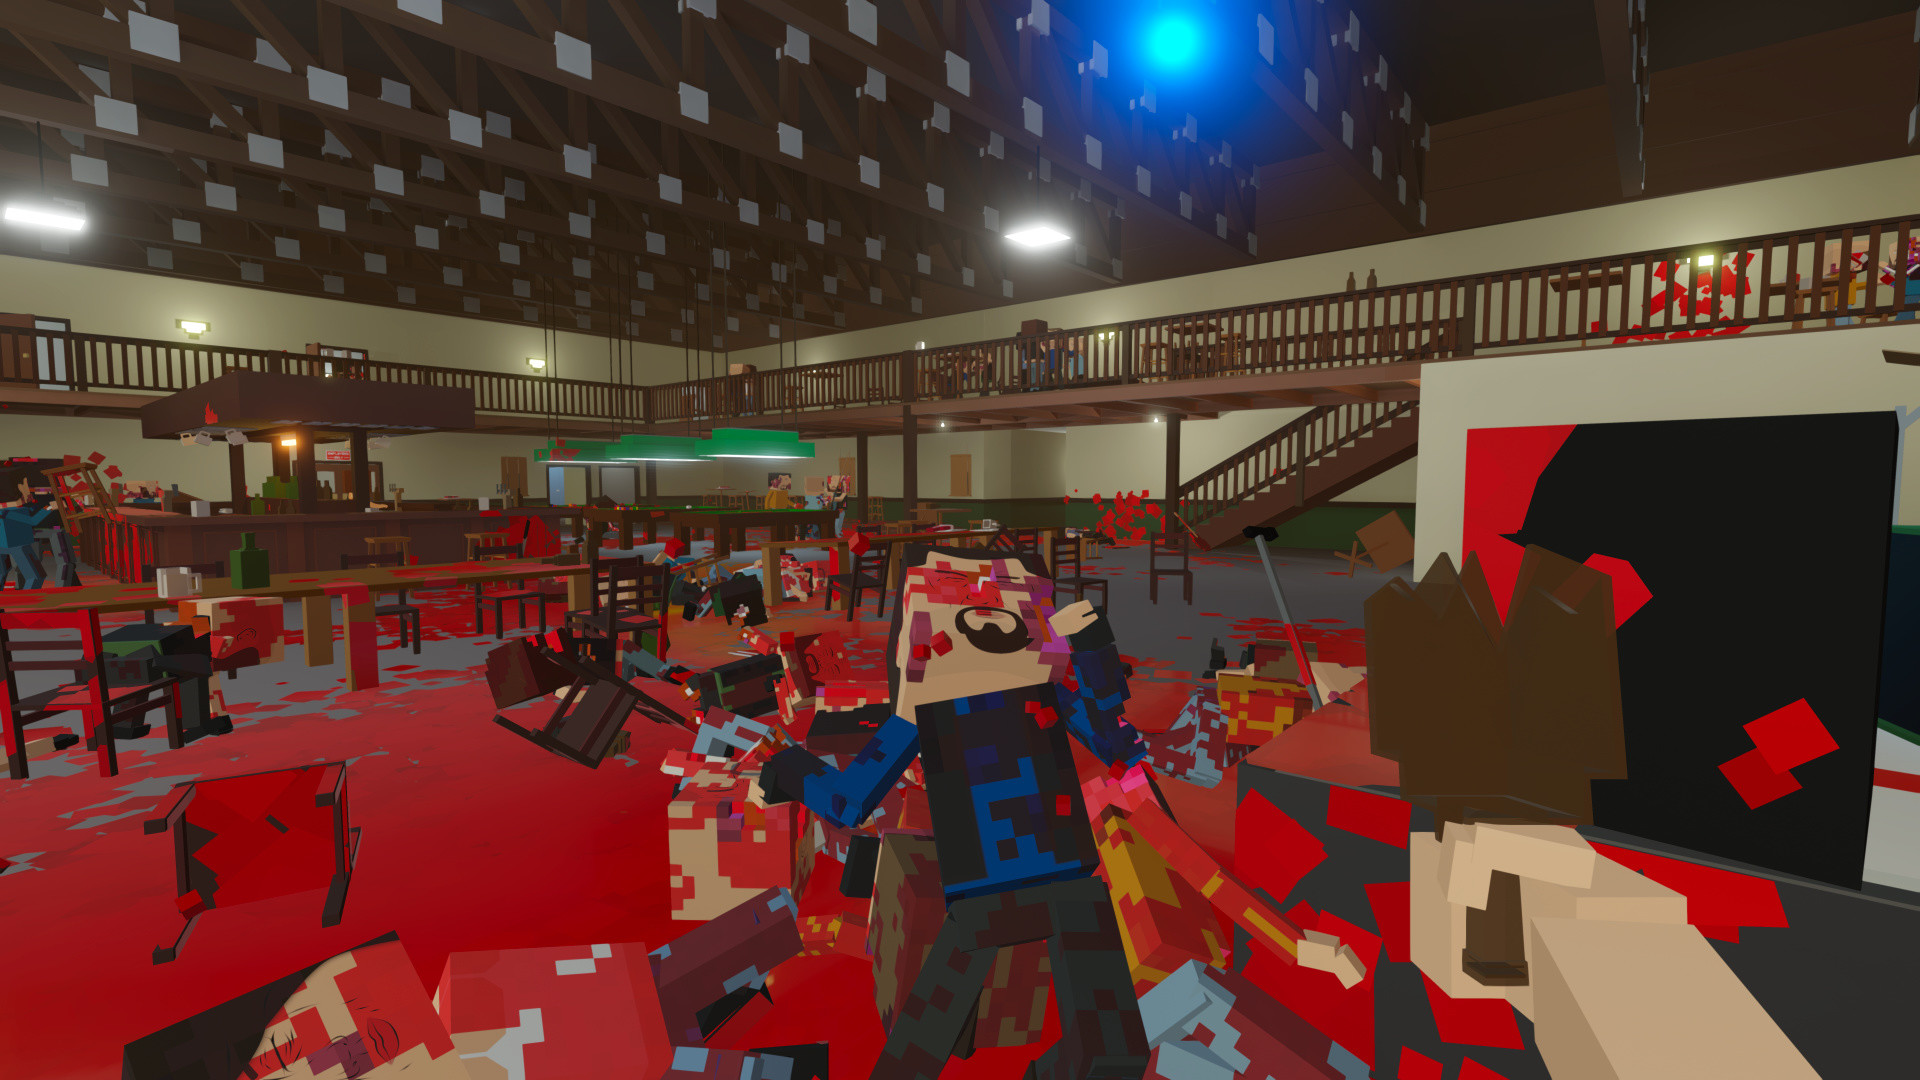 paint-the-town-red-pc-screenshot-2